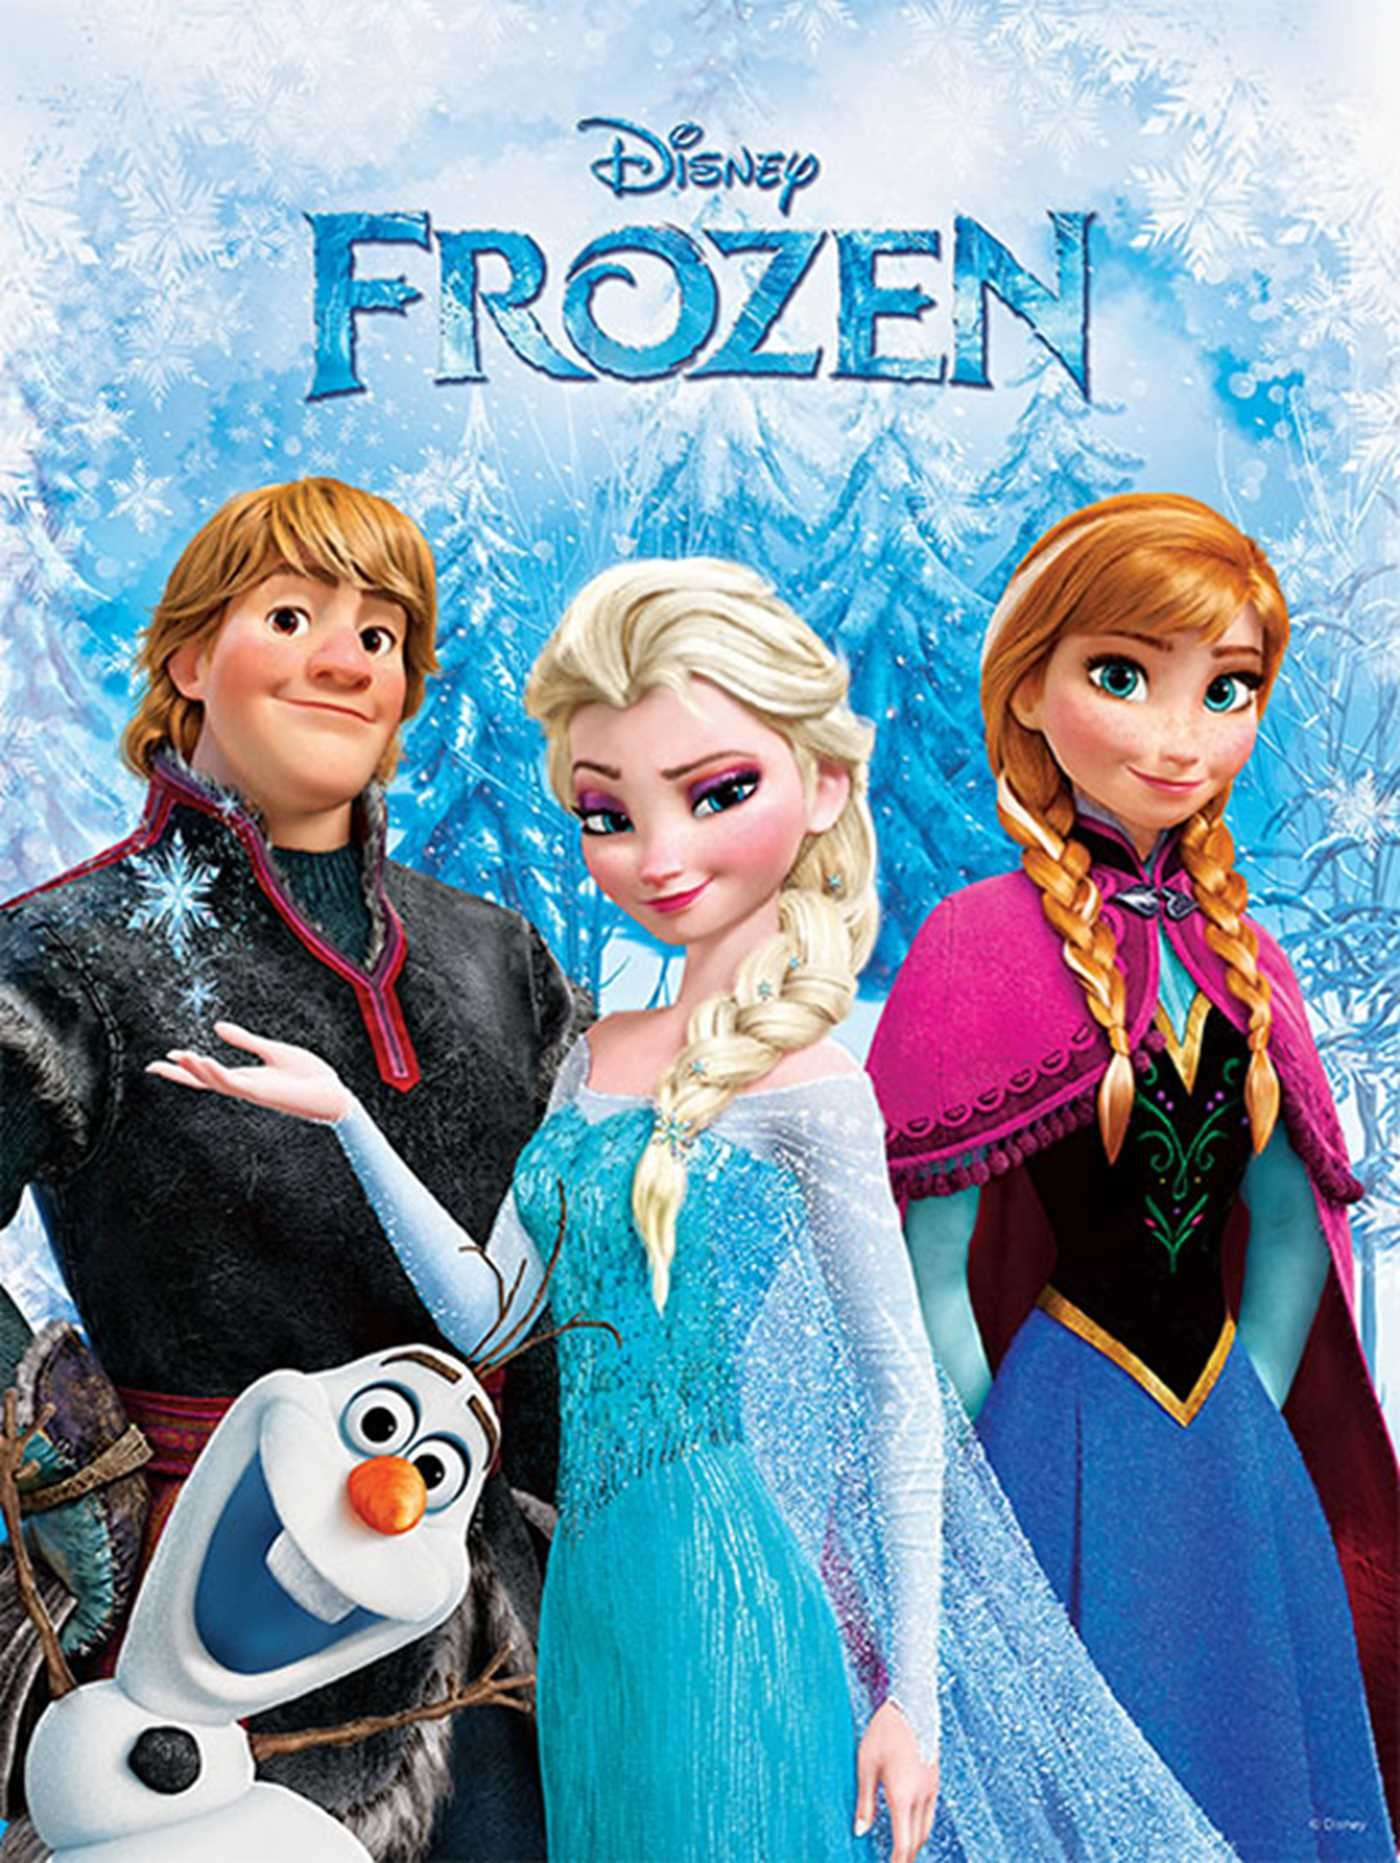 Believe, Disney frozen movie can